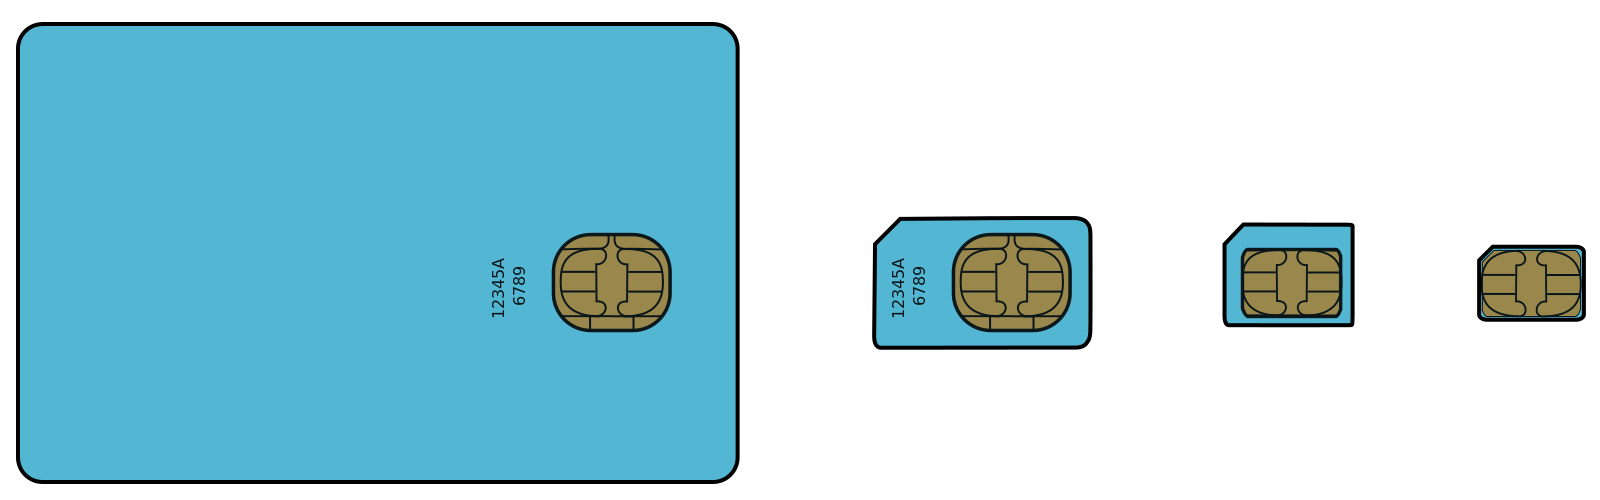 All four sim card sizes